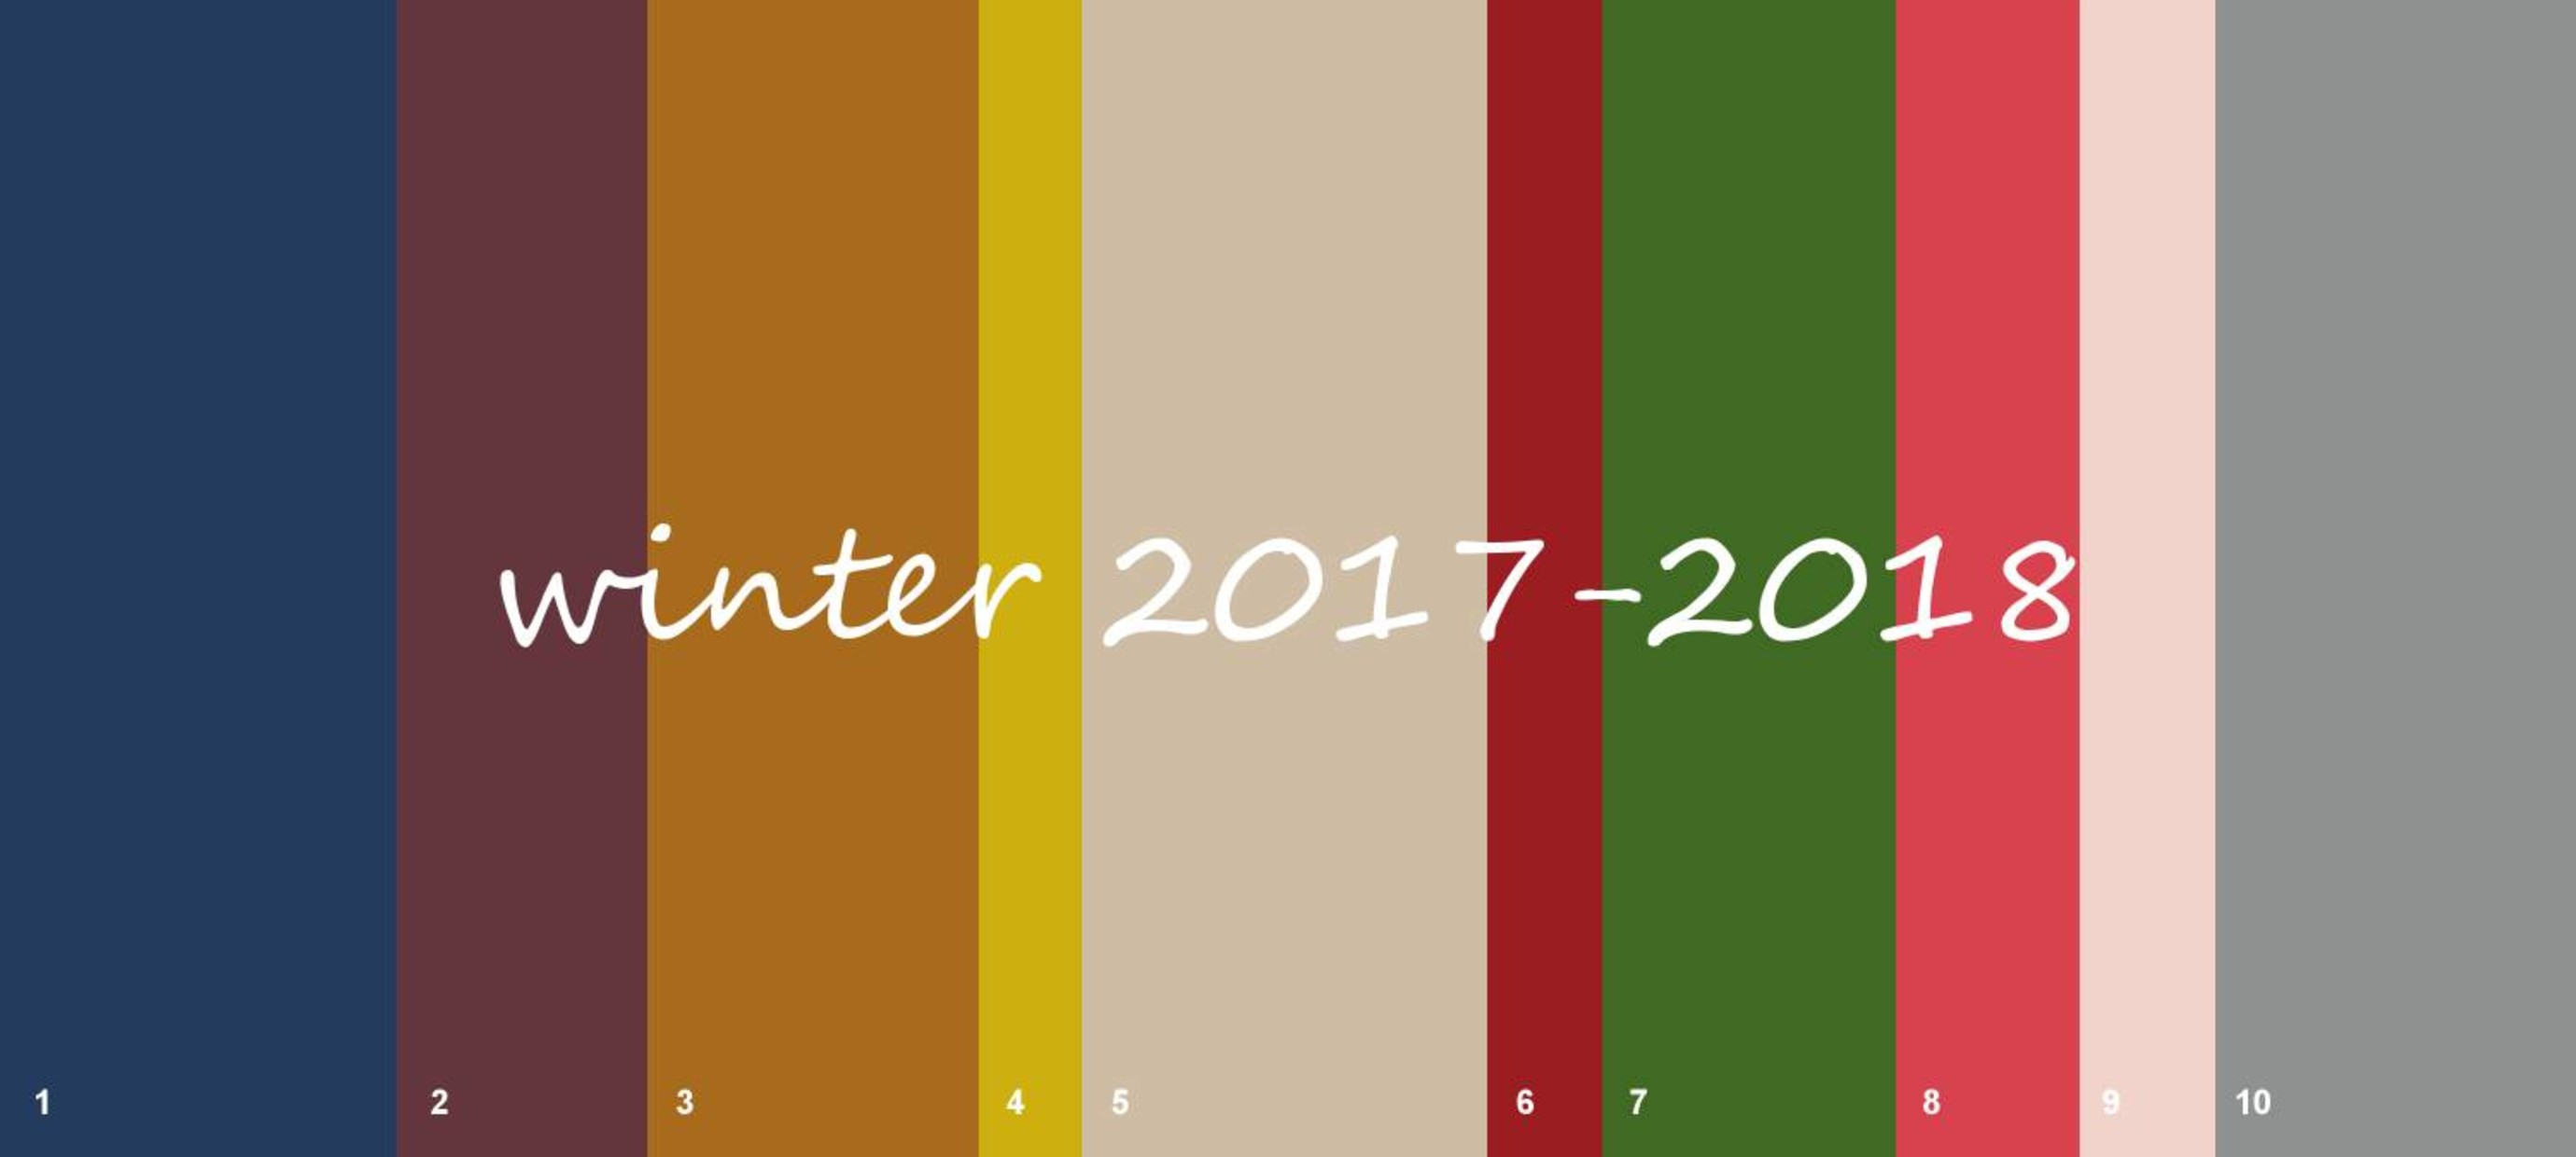 Top 10 fashion colours winter 2017-2018